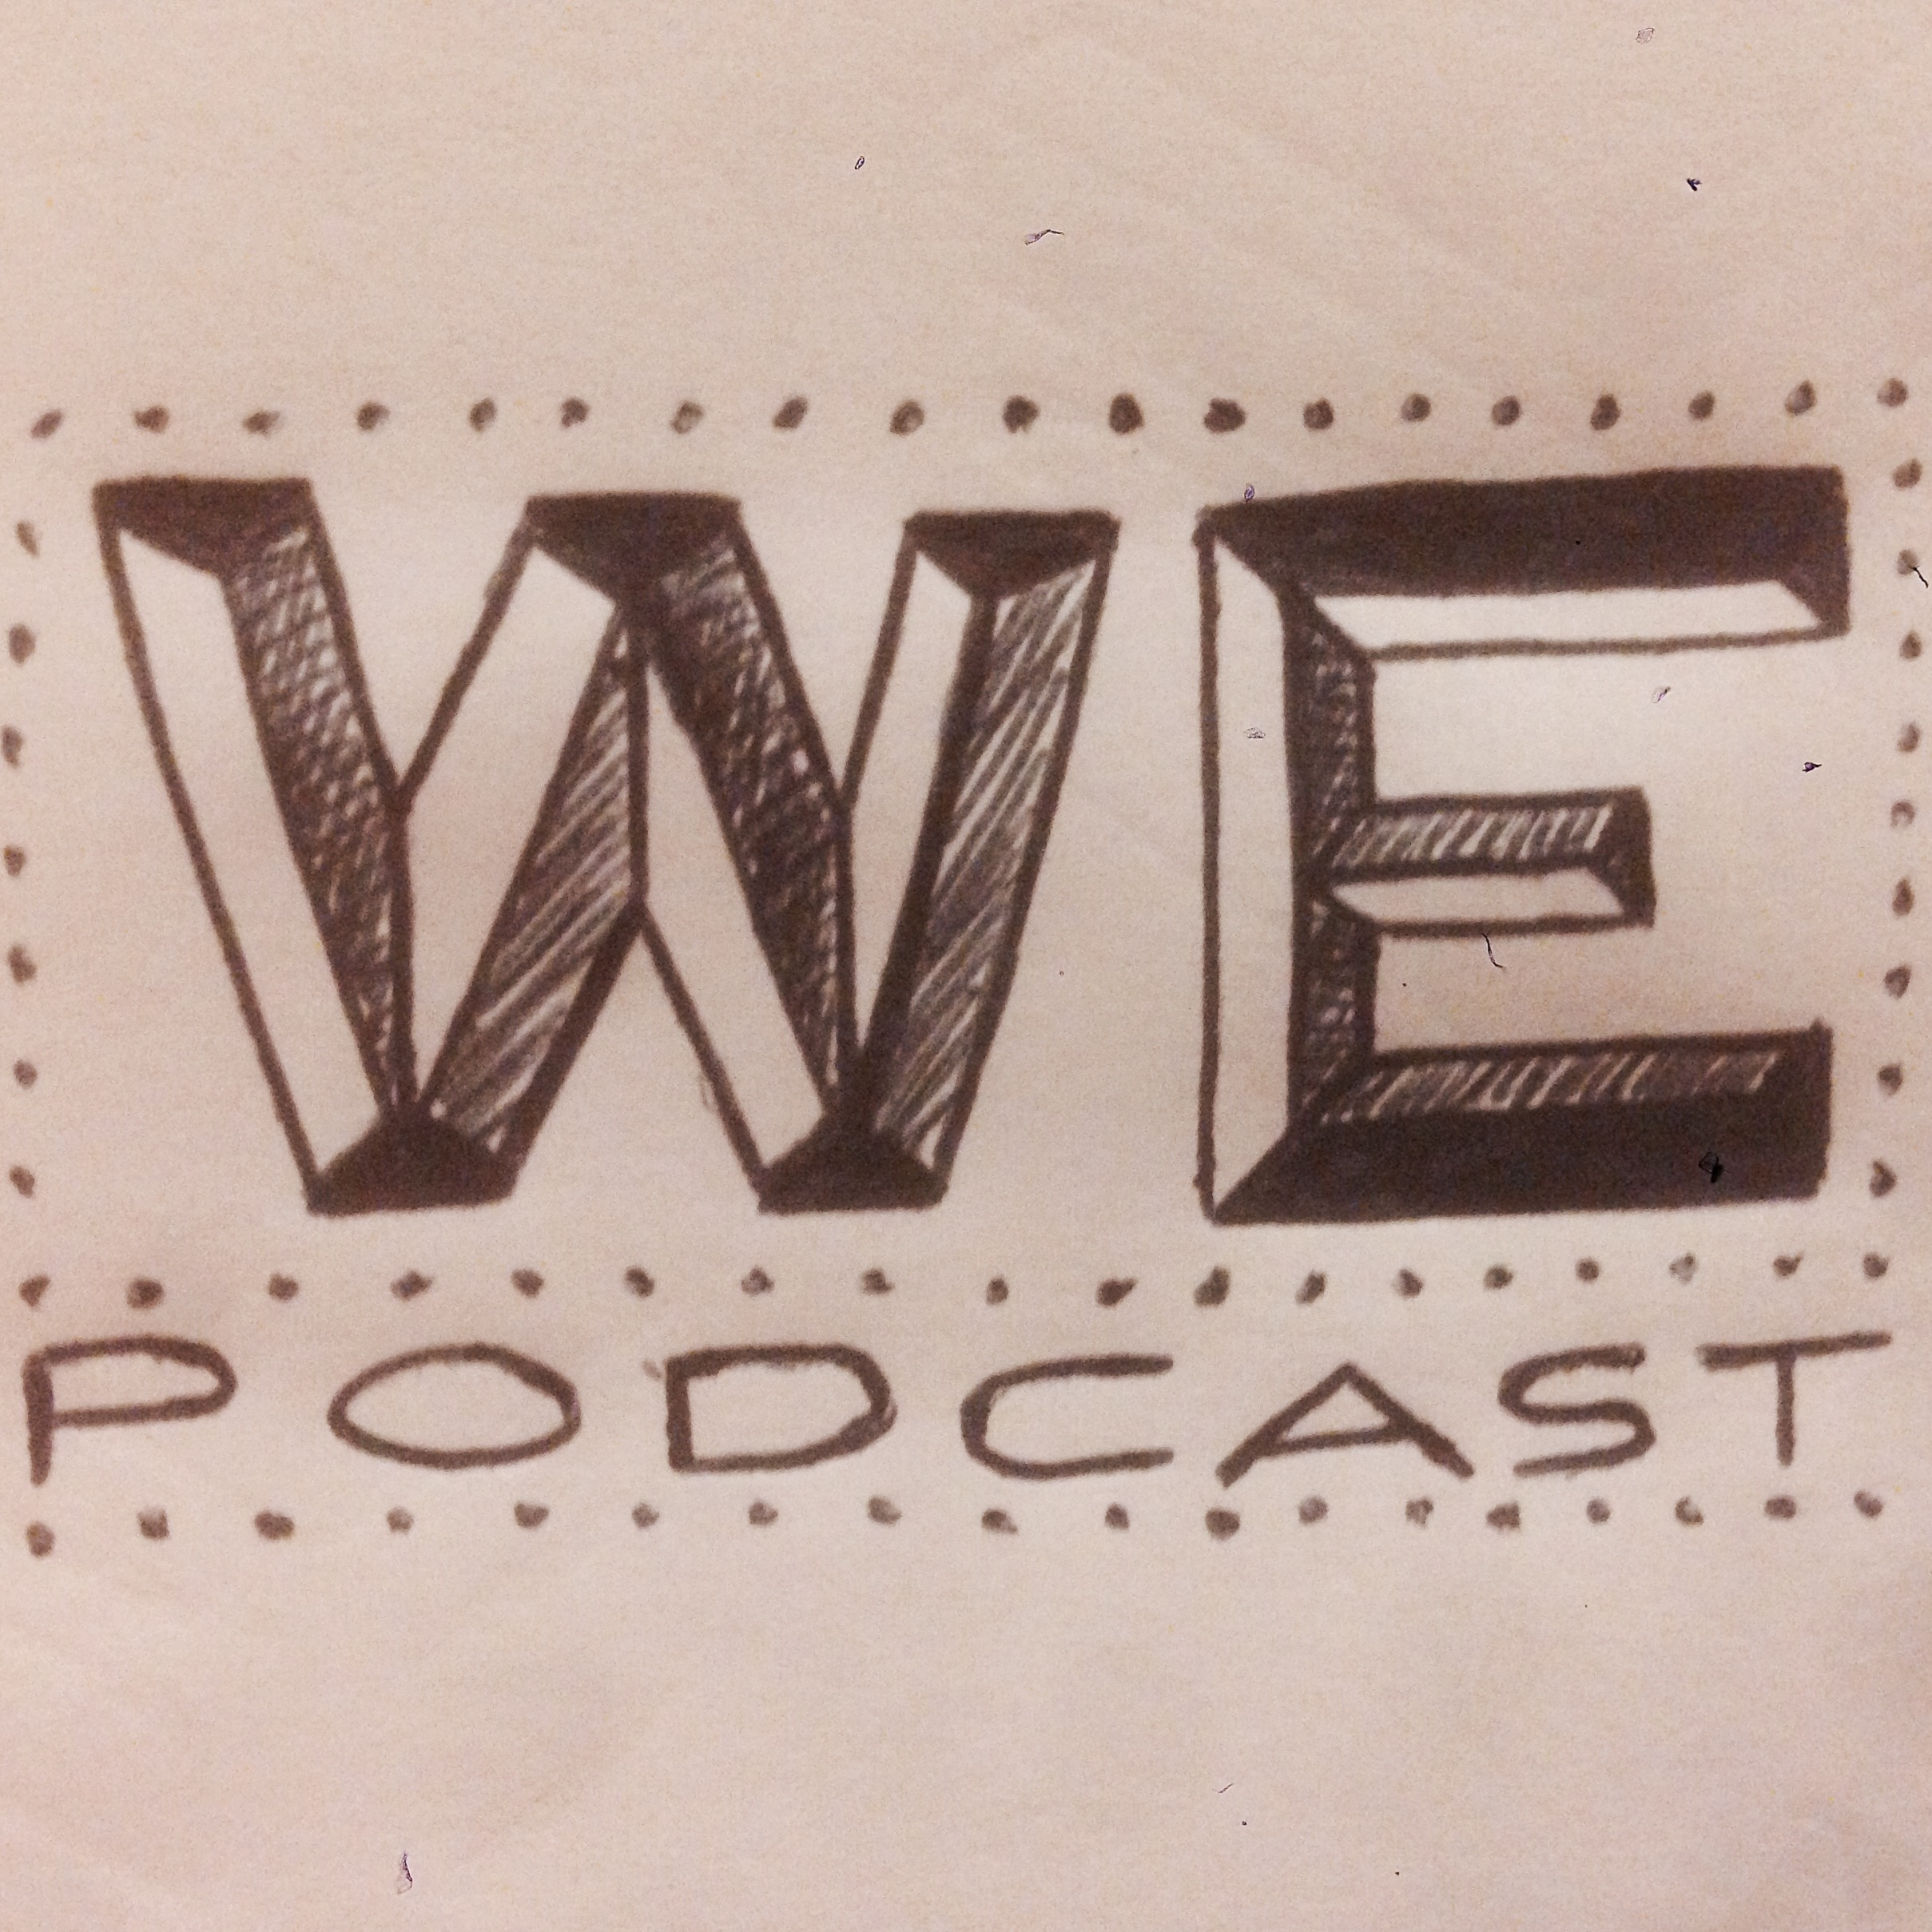 WE PODCAST